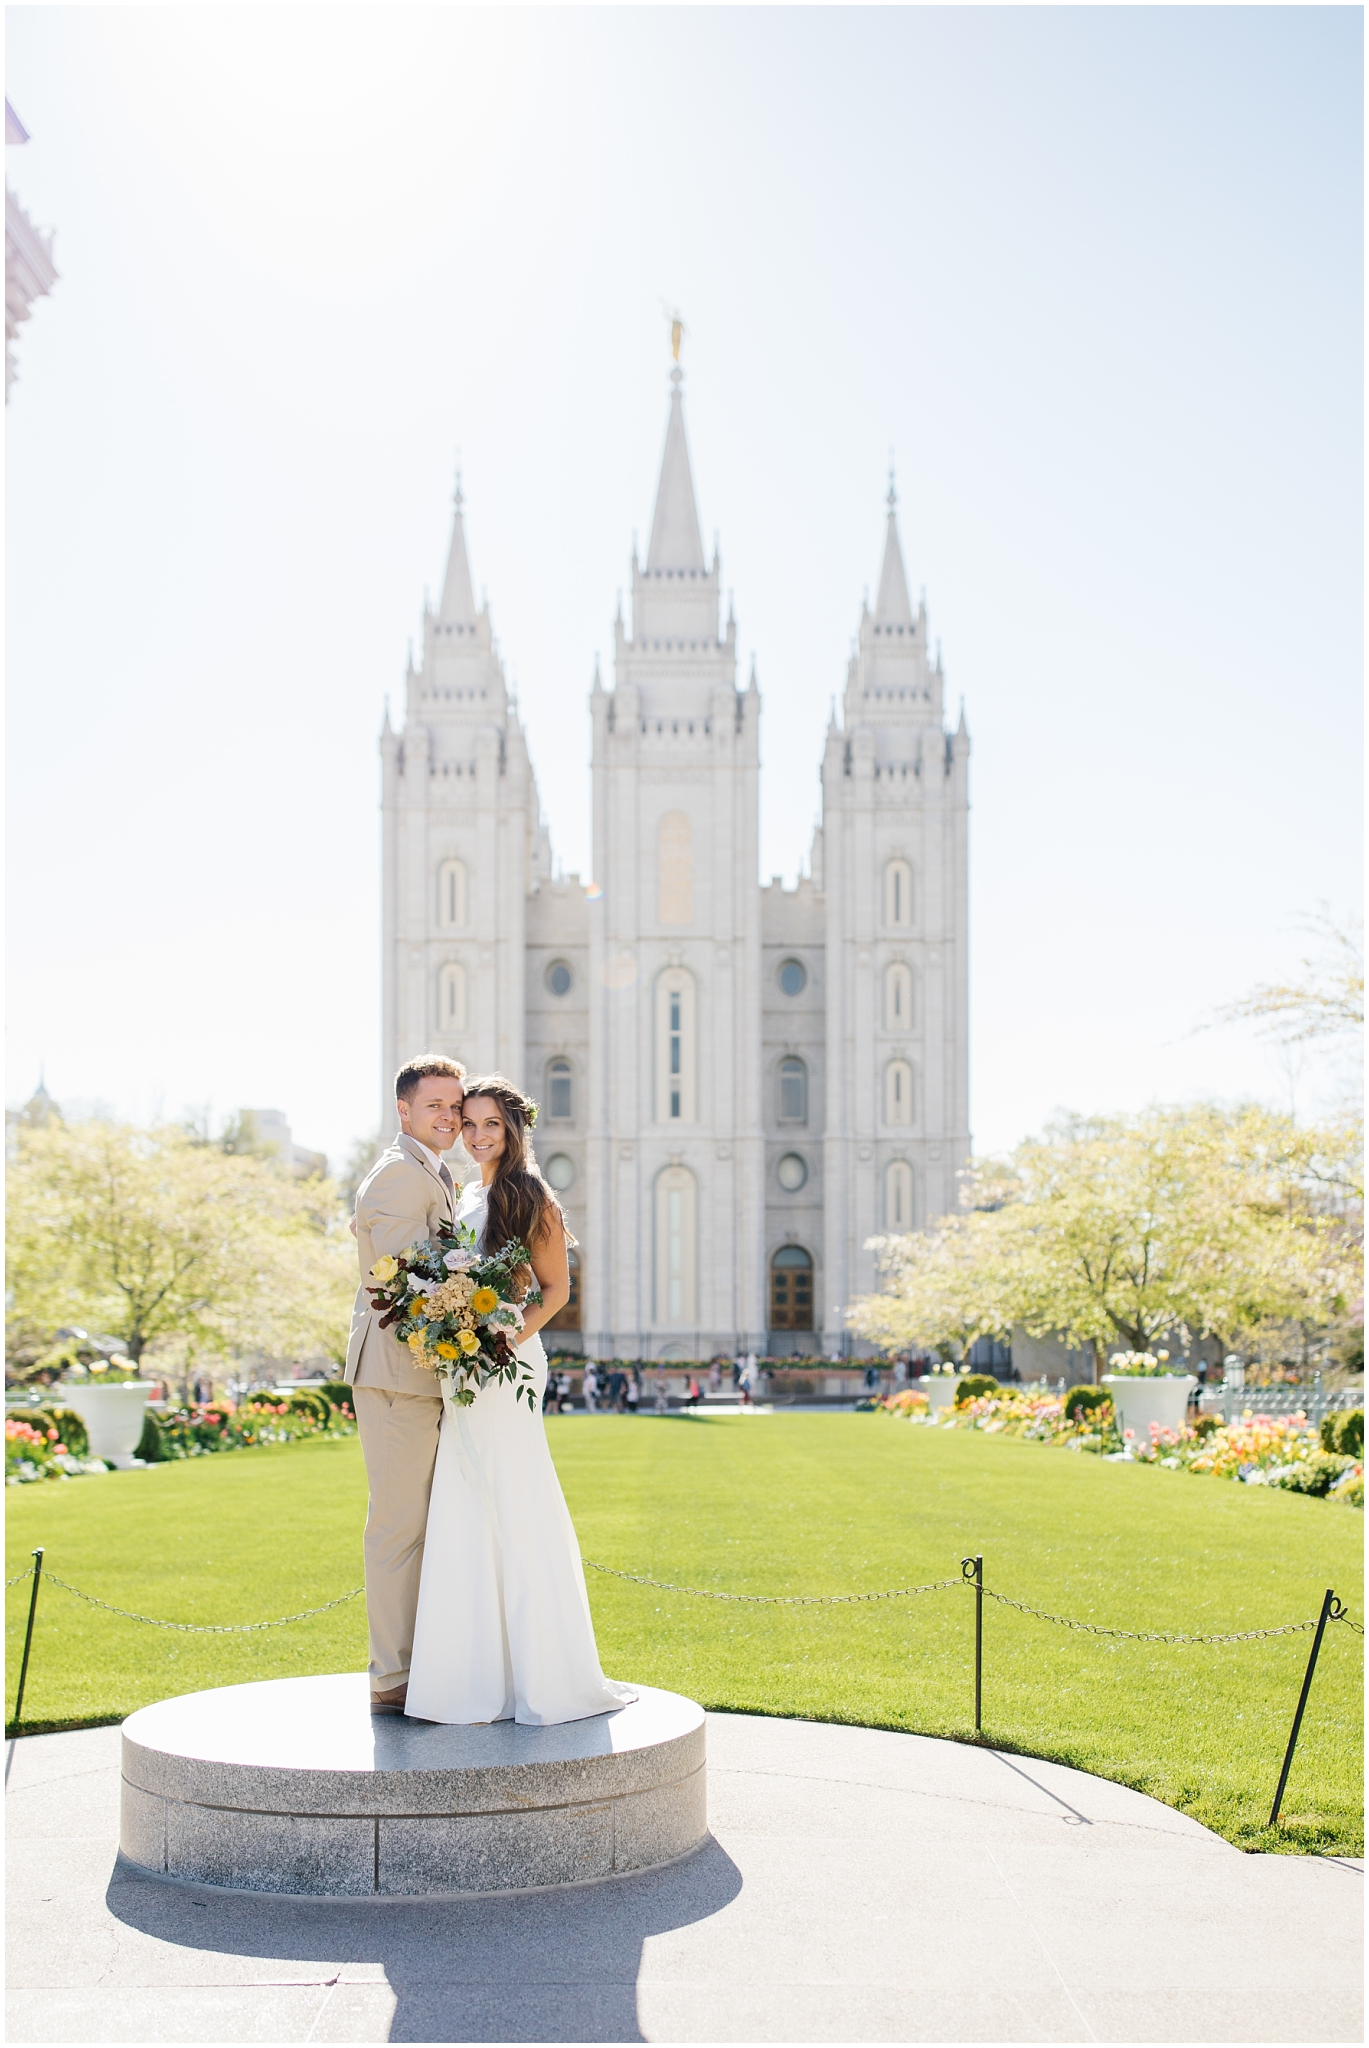 JC-Wedding-221_Lizzie-B-Imagery-Utah-Wedding-Photographer-Park-City-Salt-Lake-City-Temple-Joseph-Smith-Memorial-Building-Empire-Room.jpg